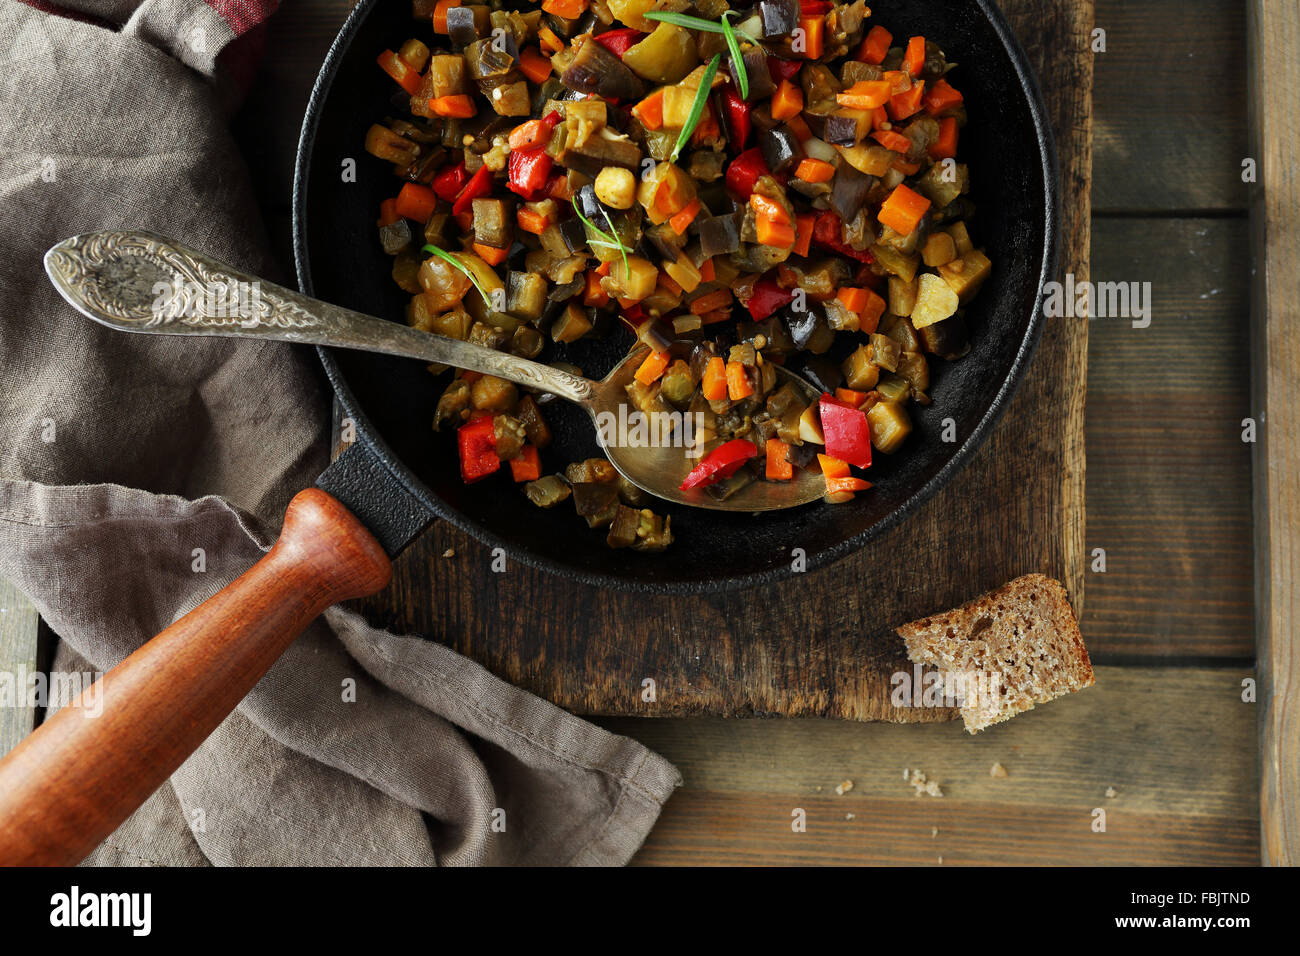 roasted vegetables pieces (tomato, aubergine, pepper), top view Stock Photo